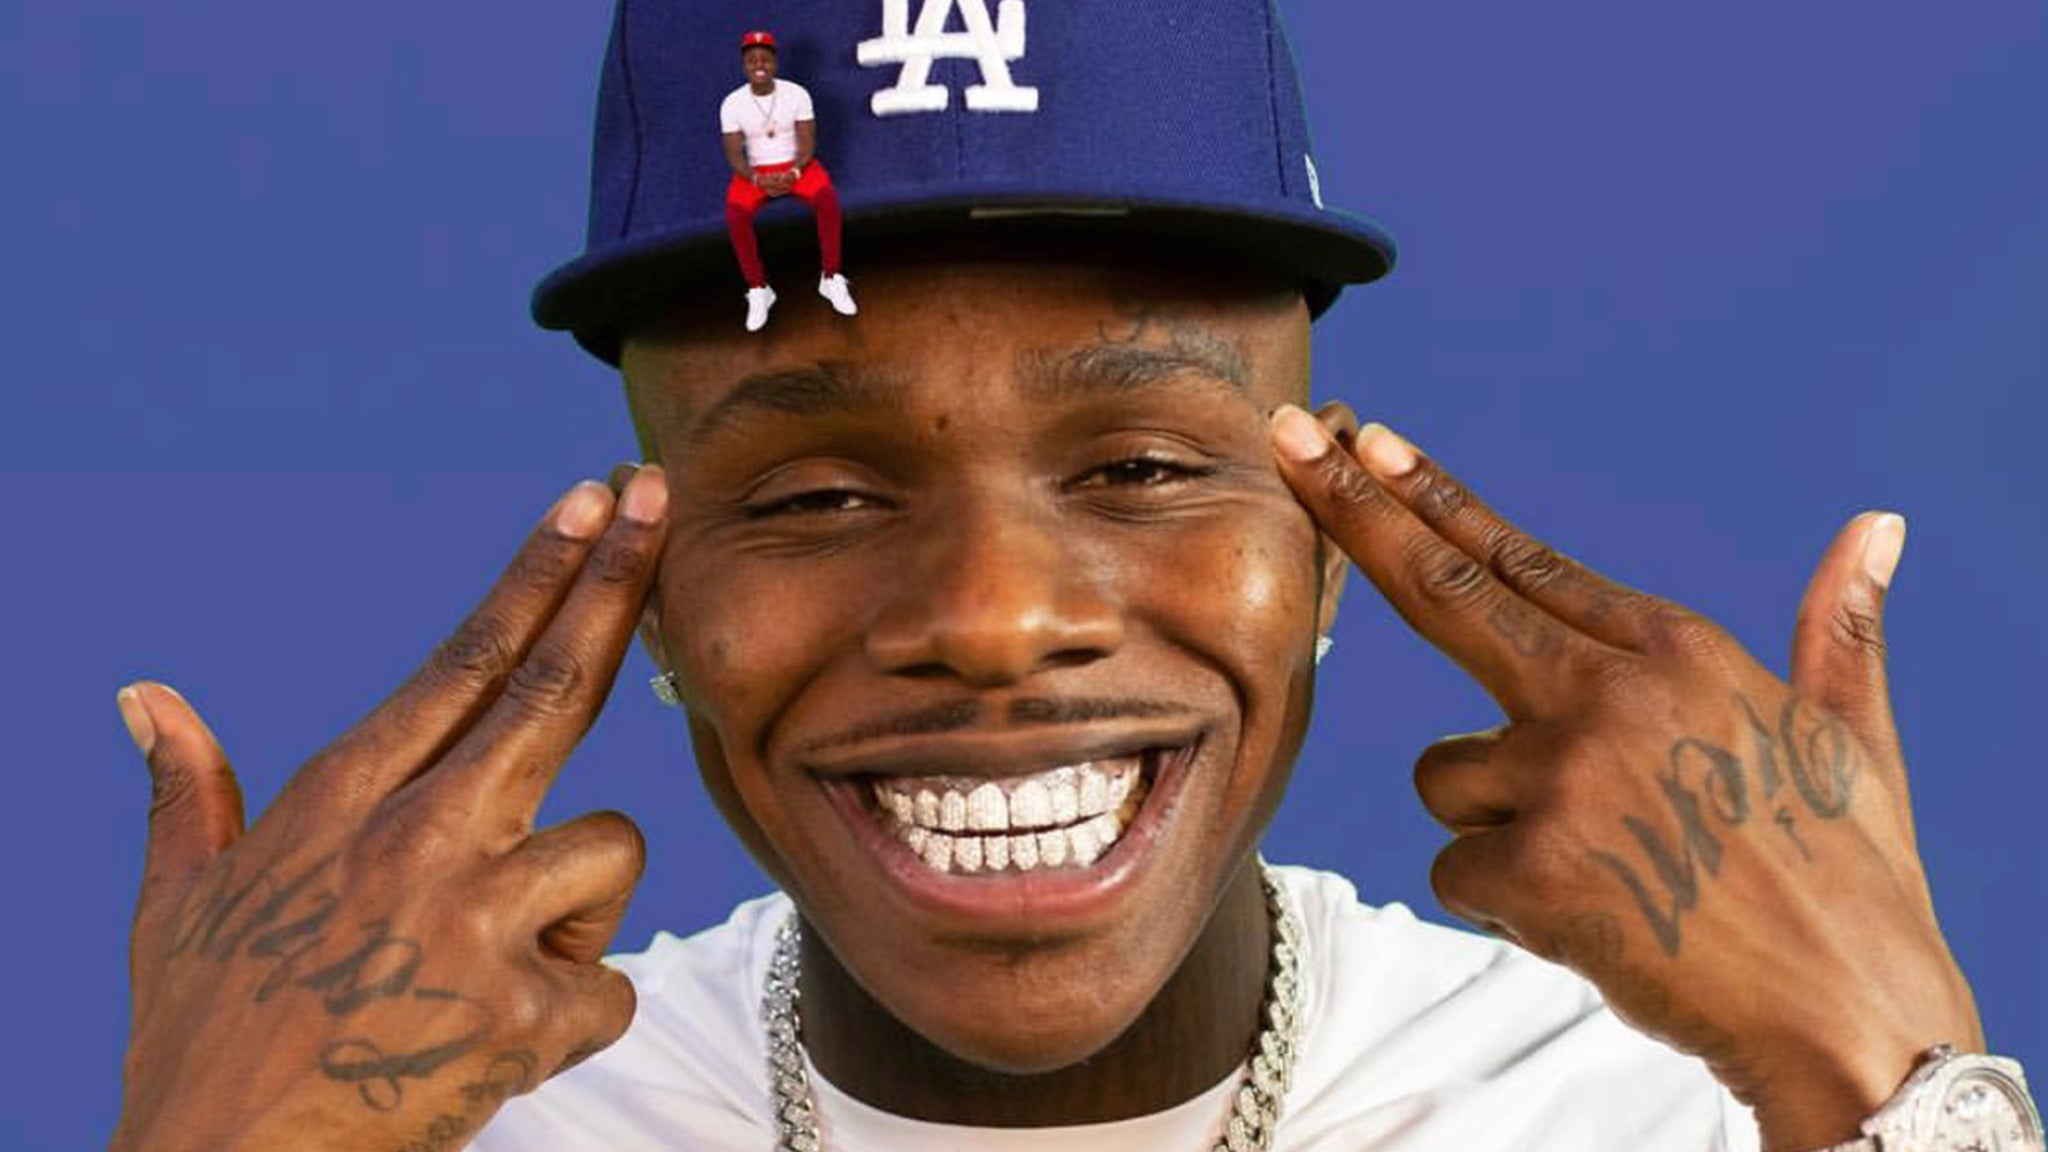 DaBaby at Roxy Theatre-CA